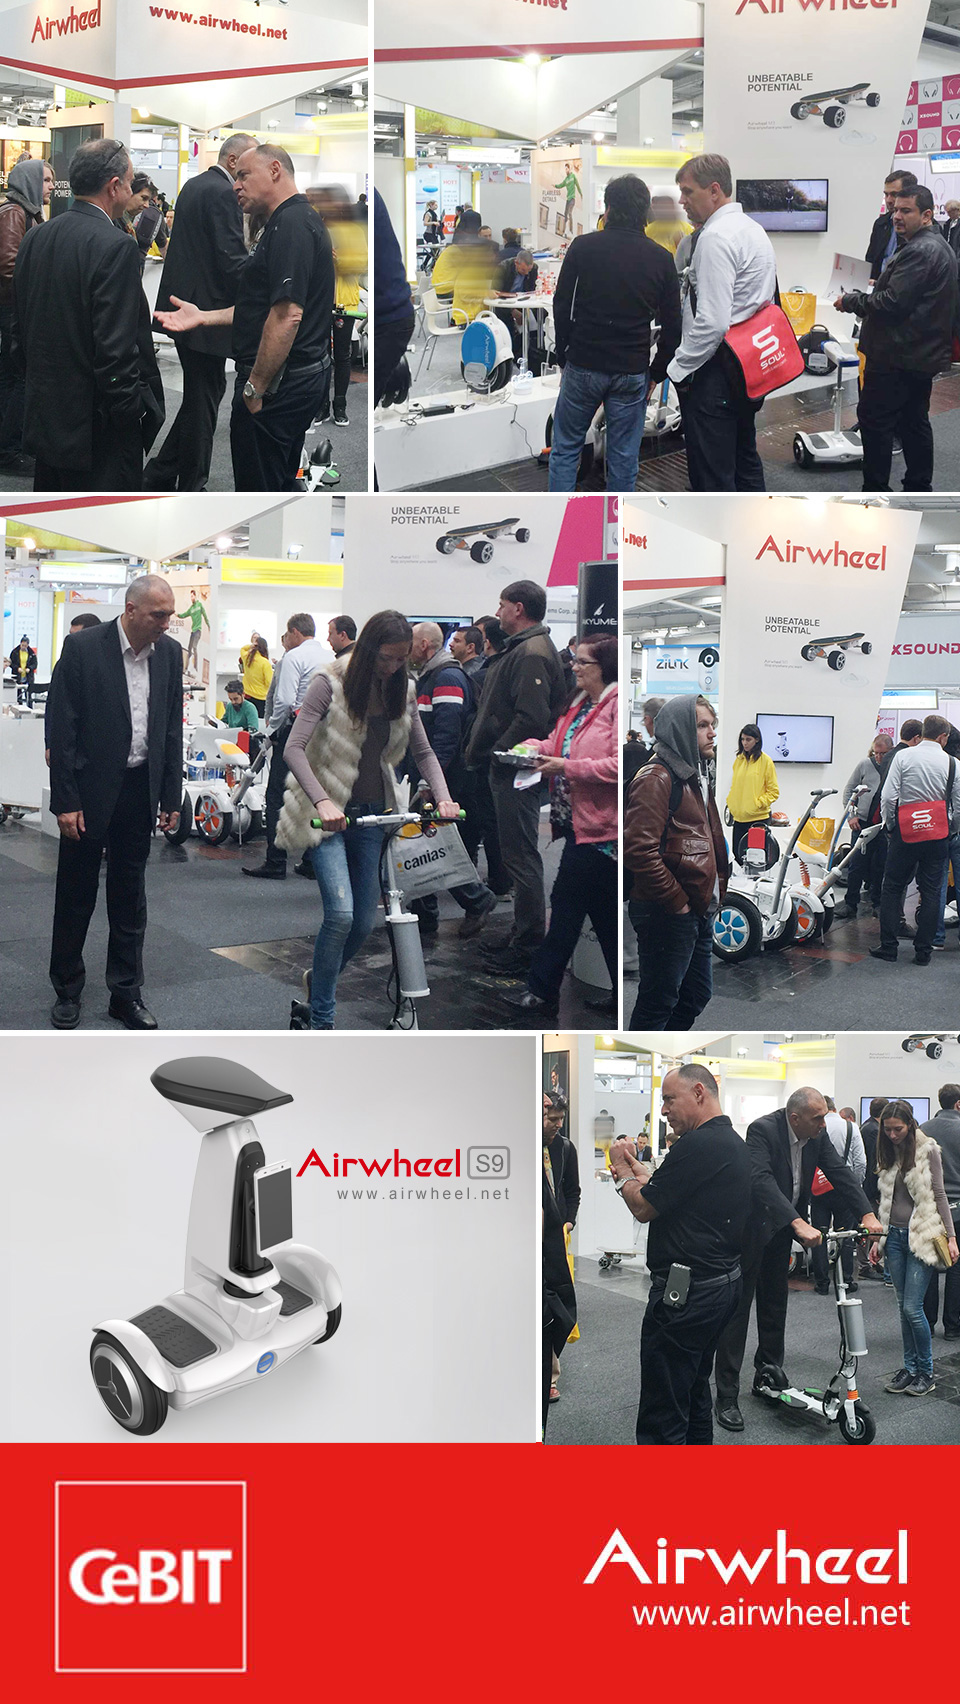 cebit-airwheel-2